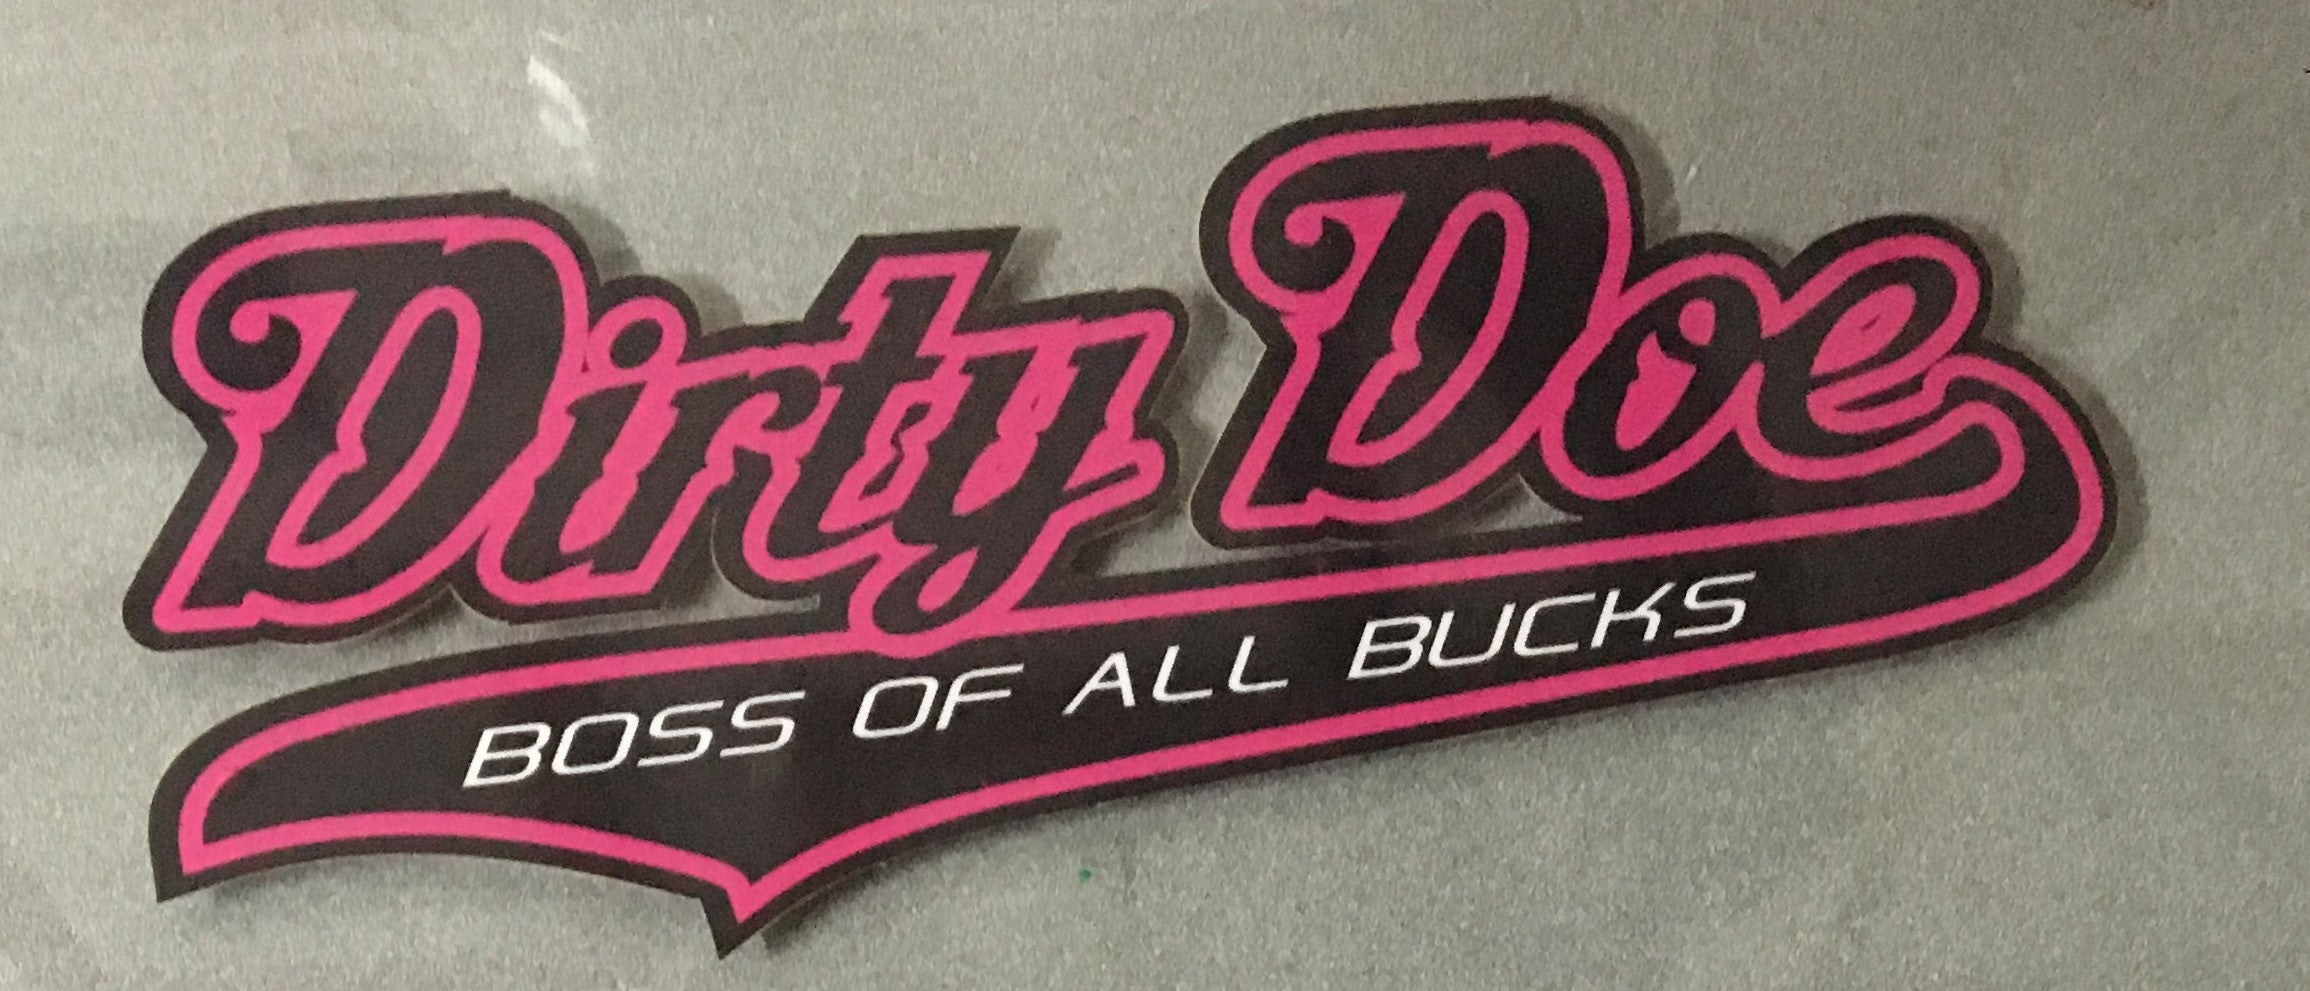 Dirty Doe Boss Of All Bucks- Decal  ( 12.5 X 5 ) - Dirty Doe & Buck Wild ,hunting apparel,camo,girls that hunt,huntress, buck wild,deer shirts,buck shirts,country shirt,country girl shirts, amazon,cabelas,bass pro shop,sportmans,